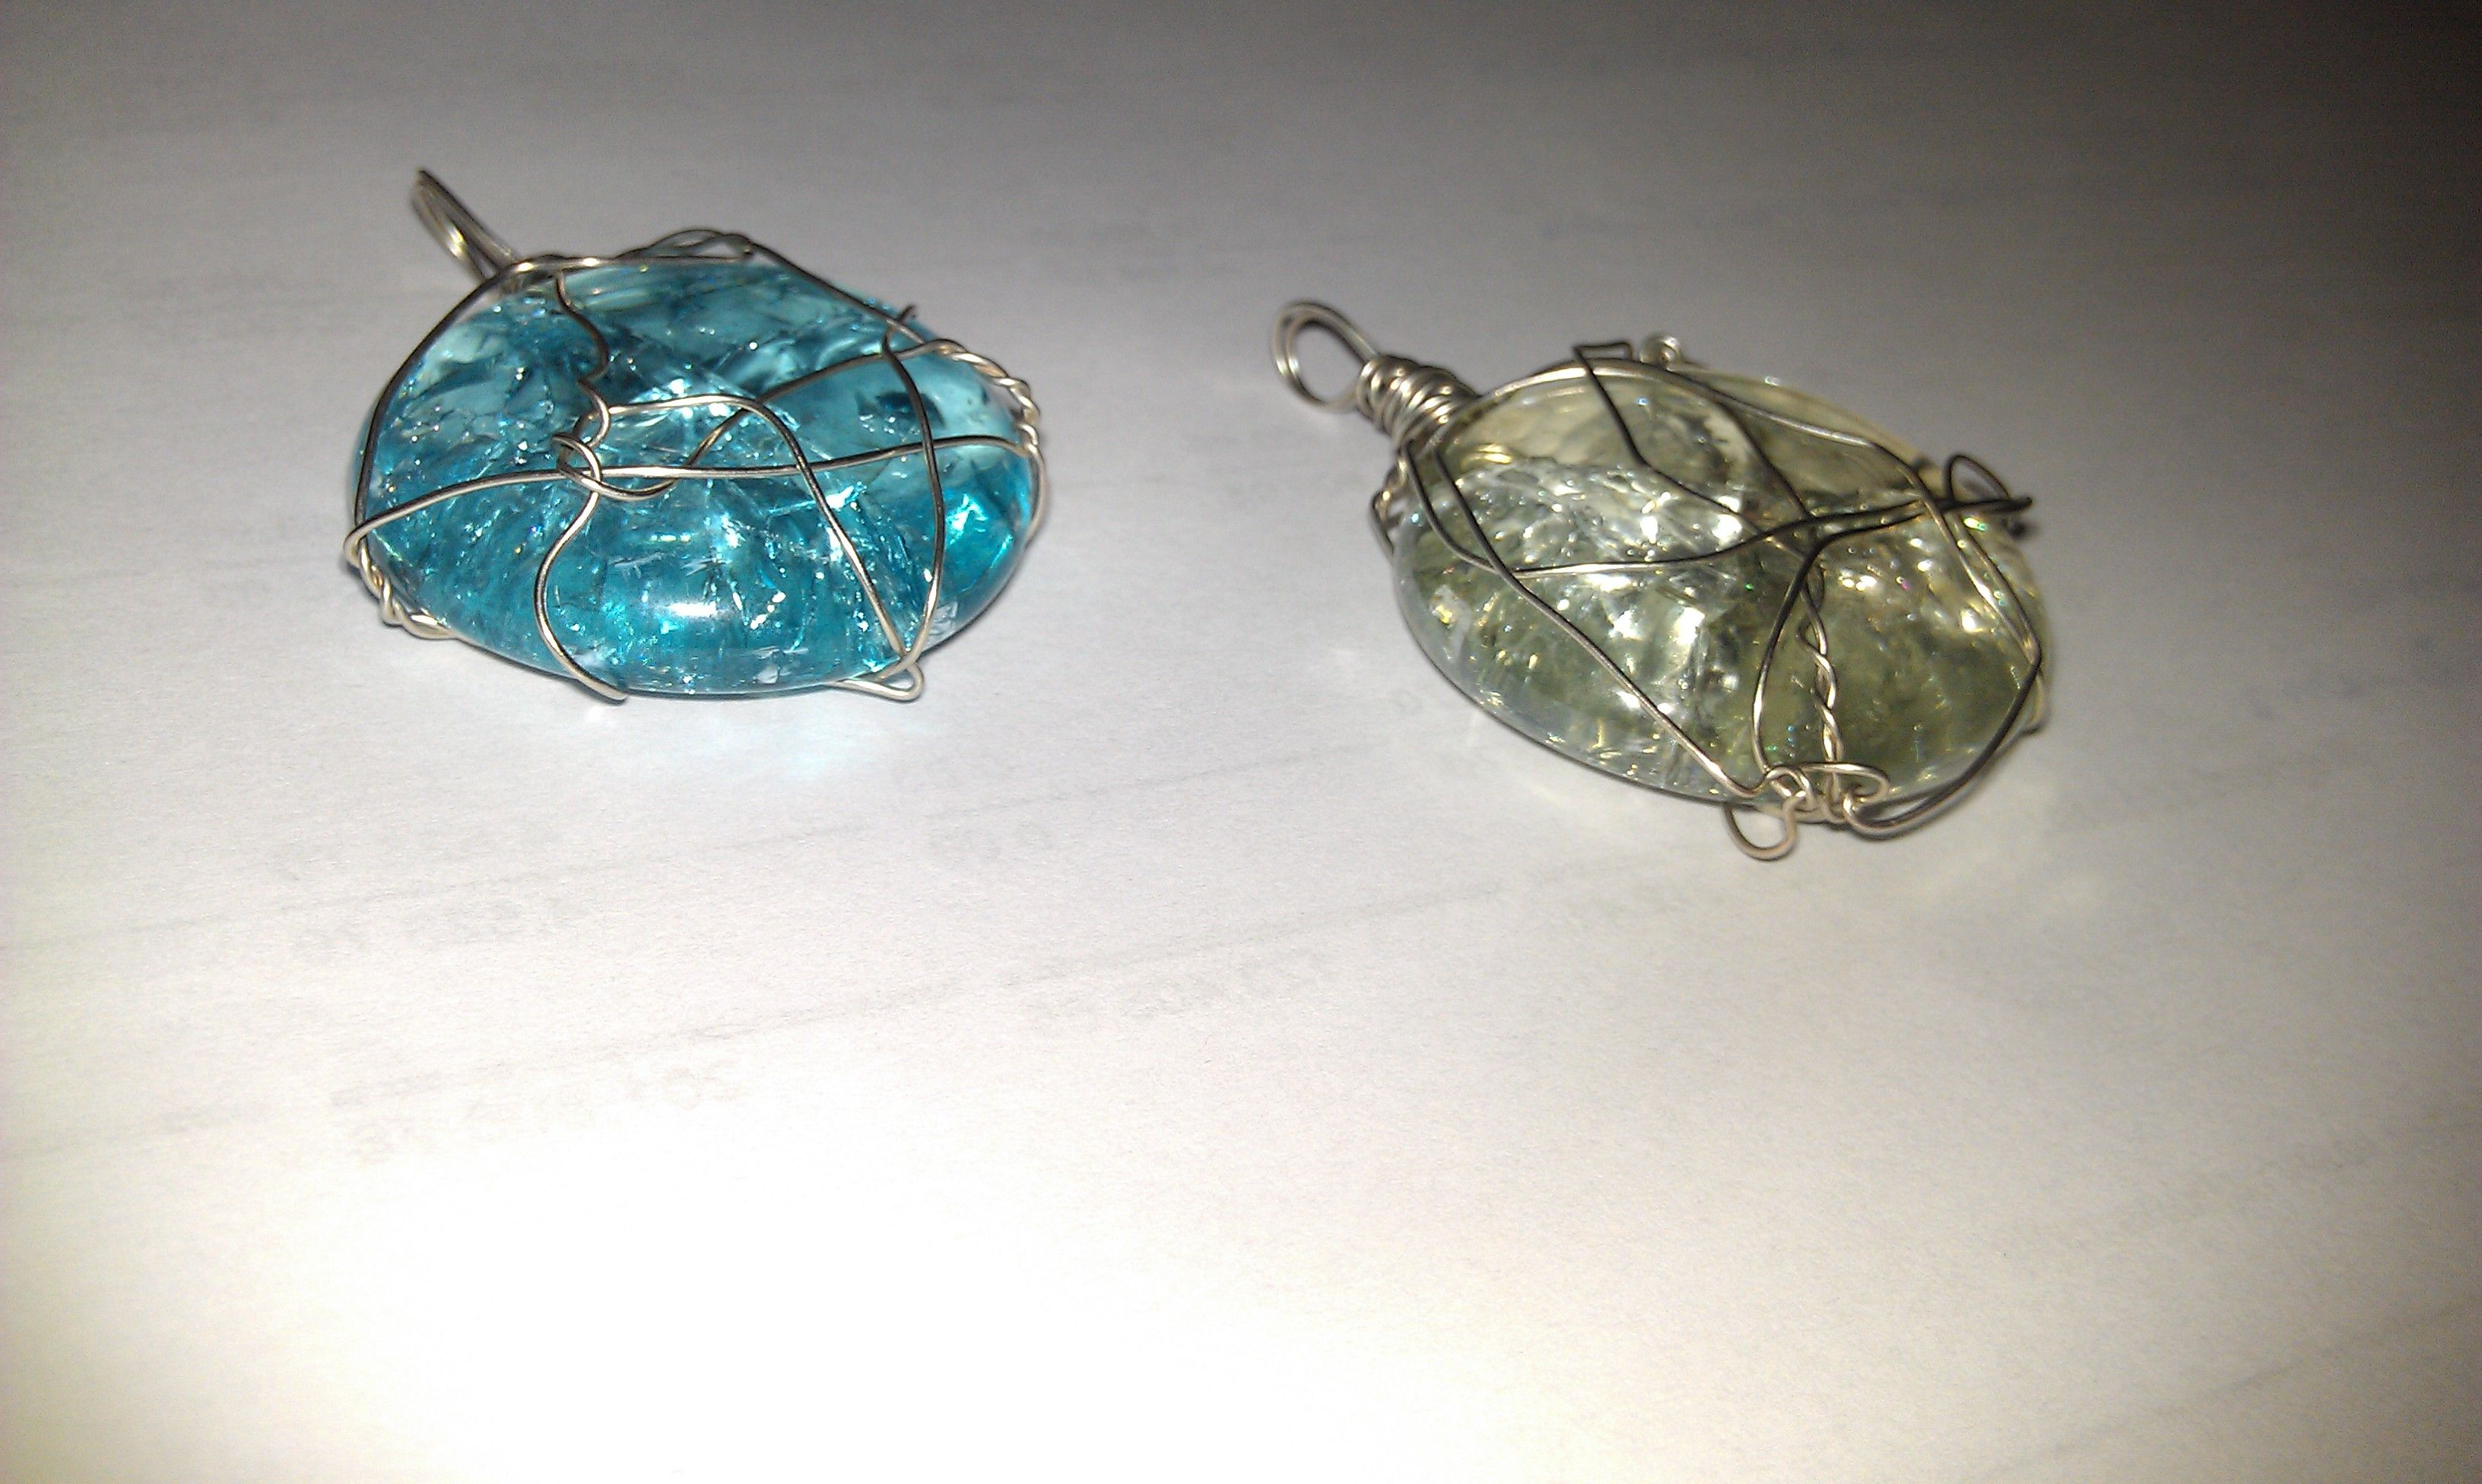 Baked marble pendants! Great for jewellery making! Just need ...